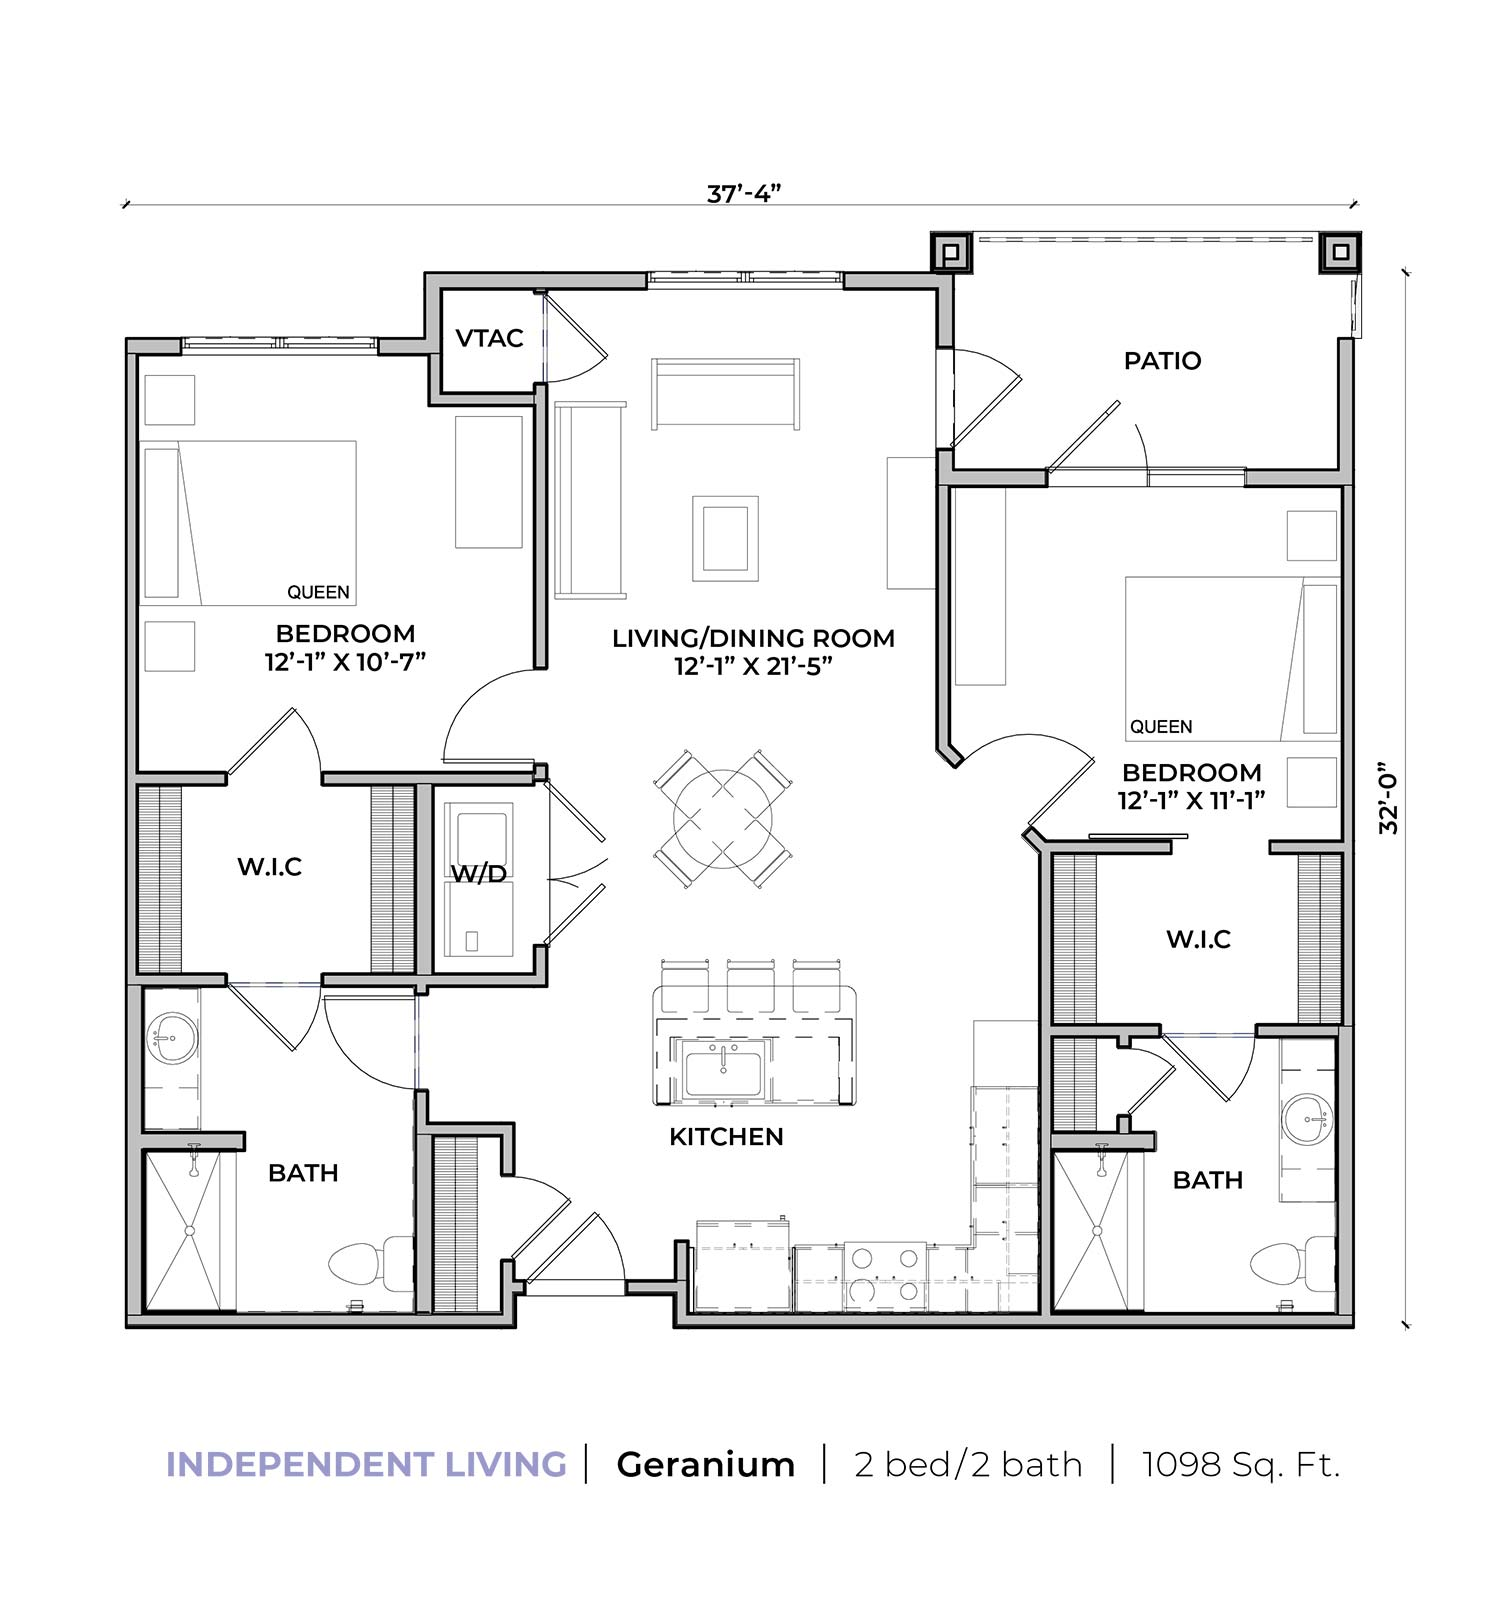 Independent living Geranium two-bedroom two-bathroom apartment floor plan